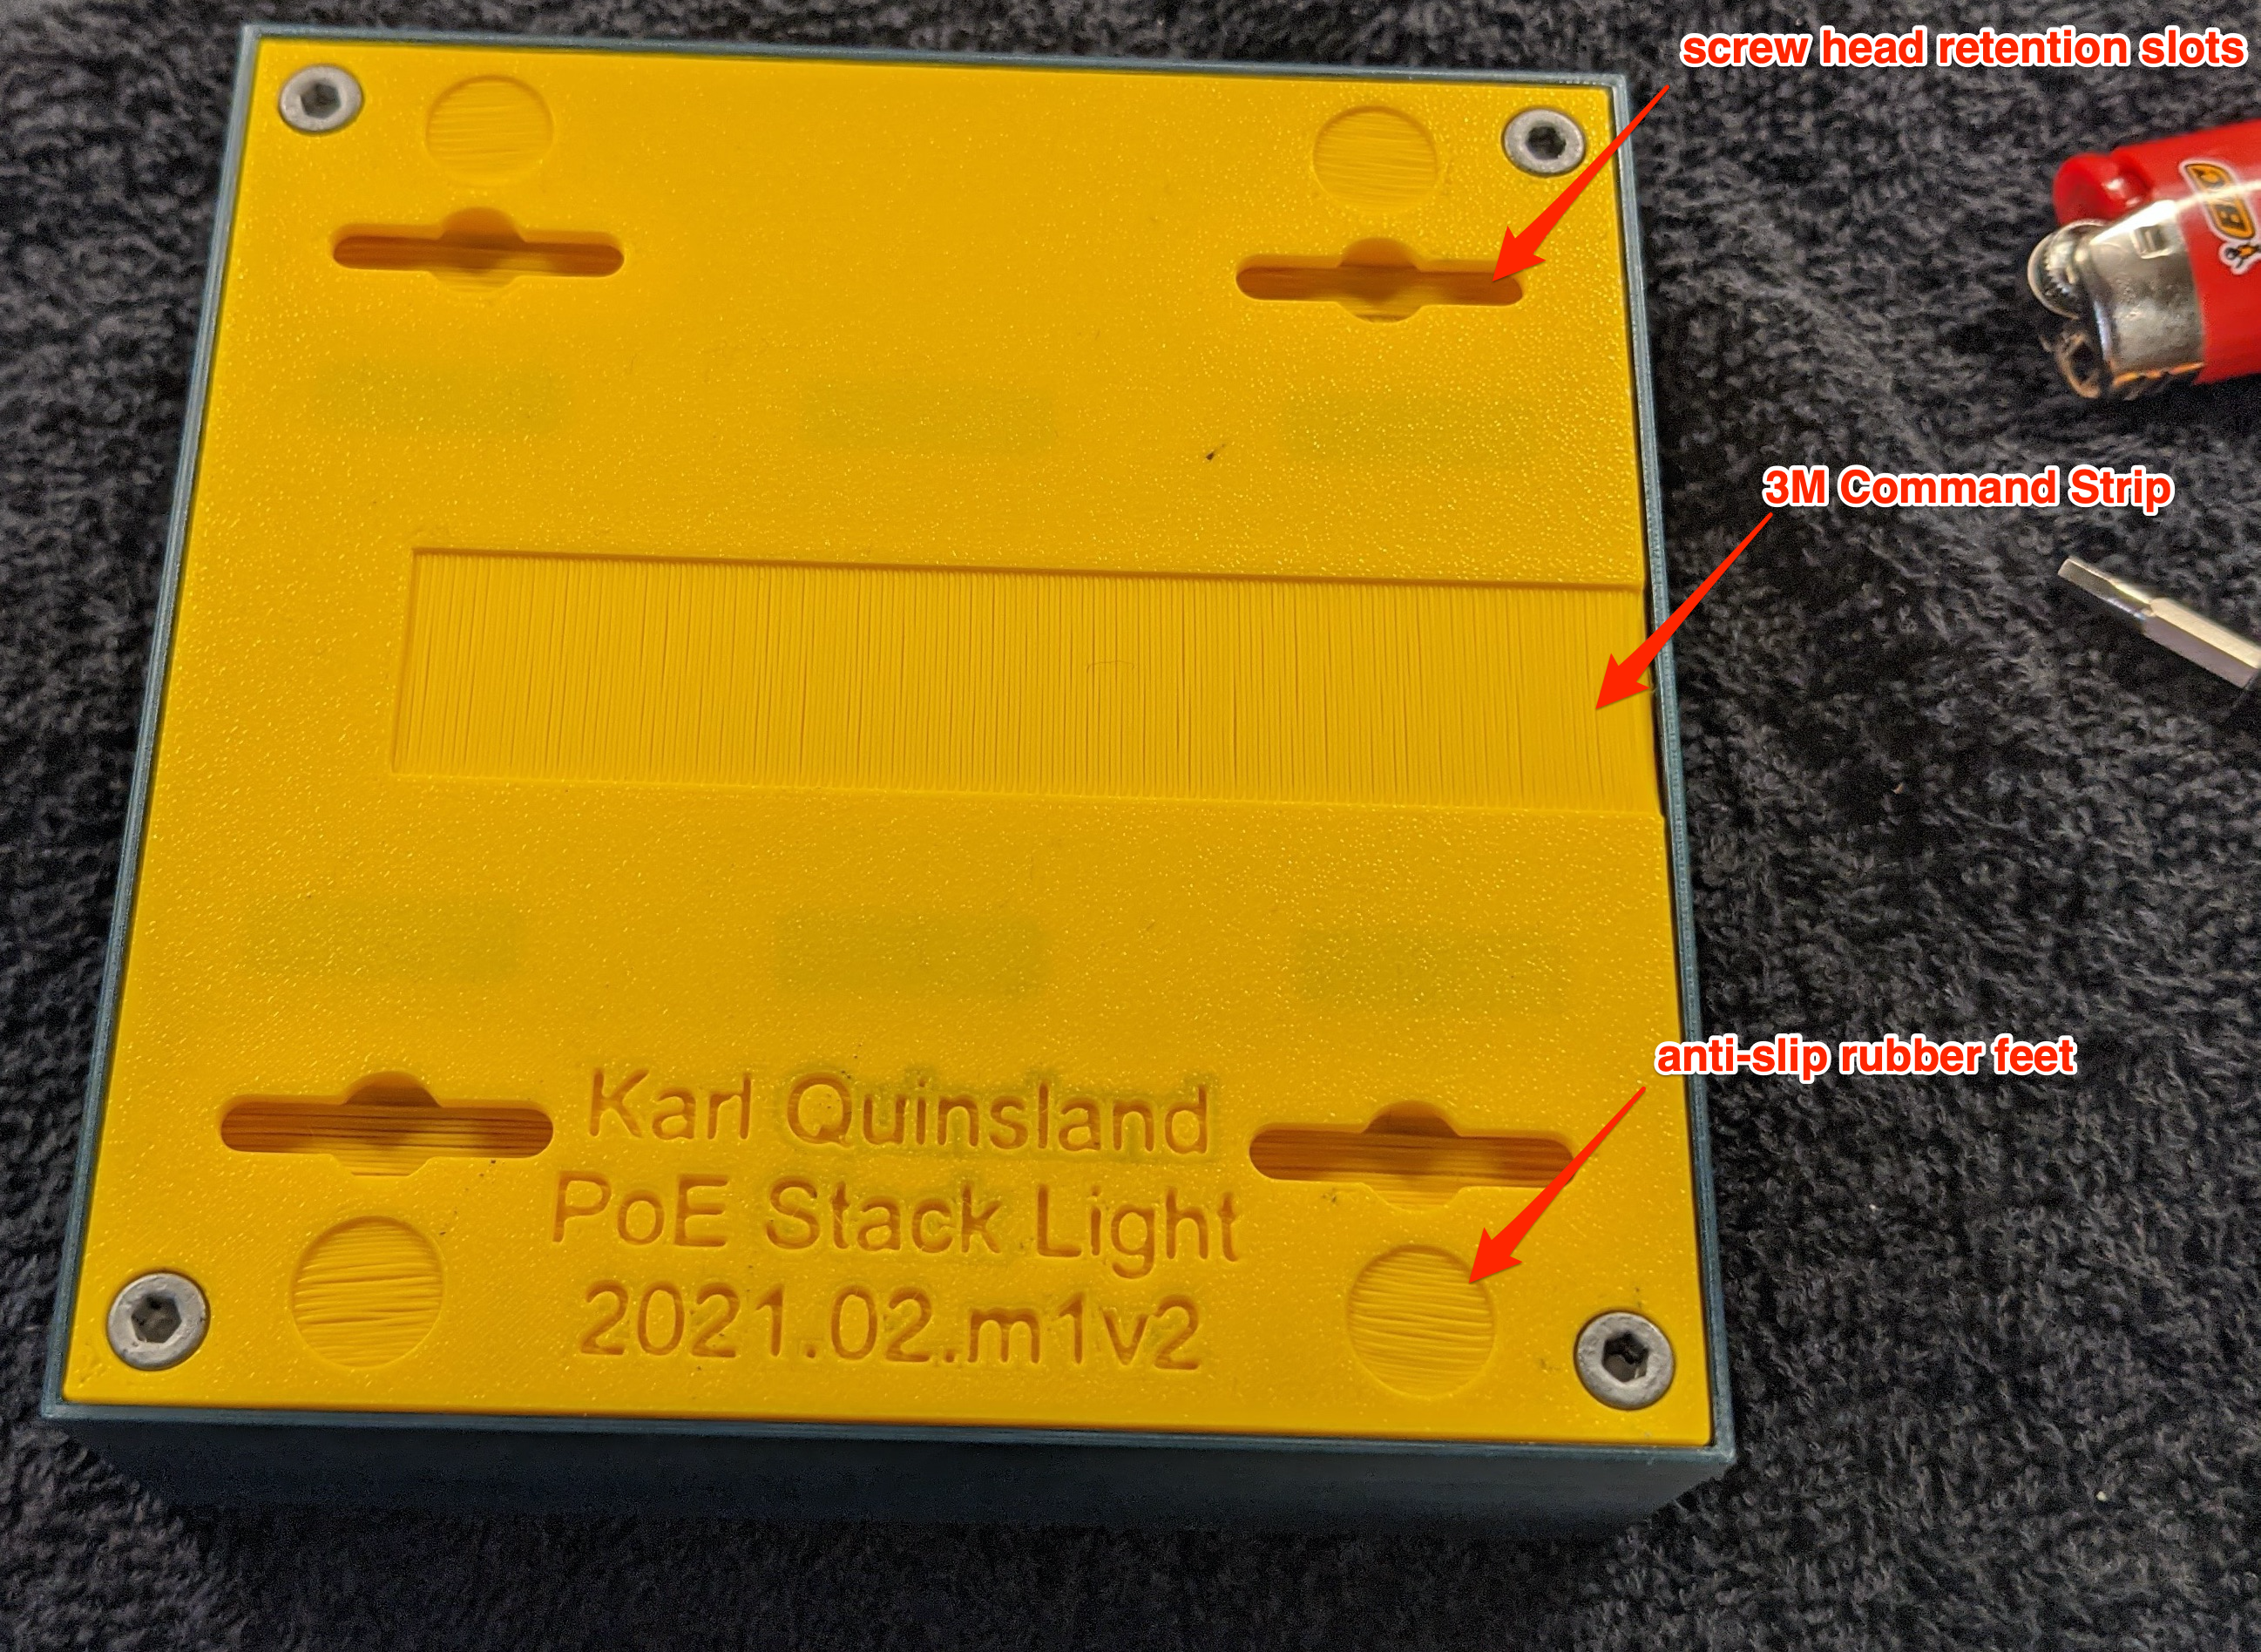 Picture annotated to call out specific design features in the base for a variety of mounting options.